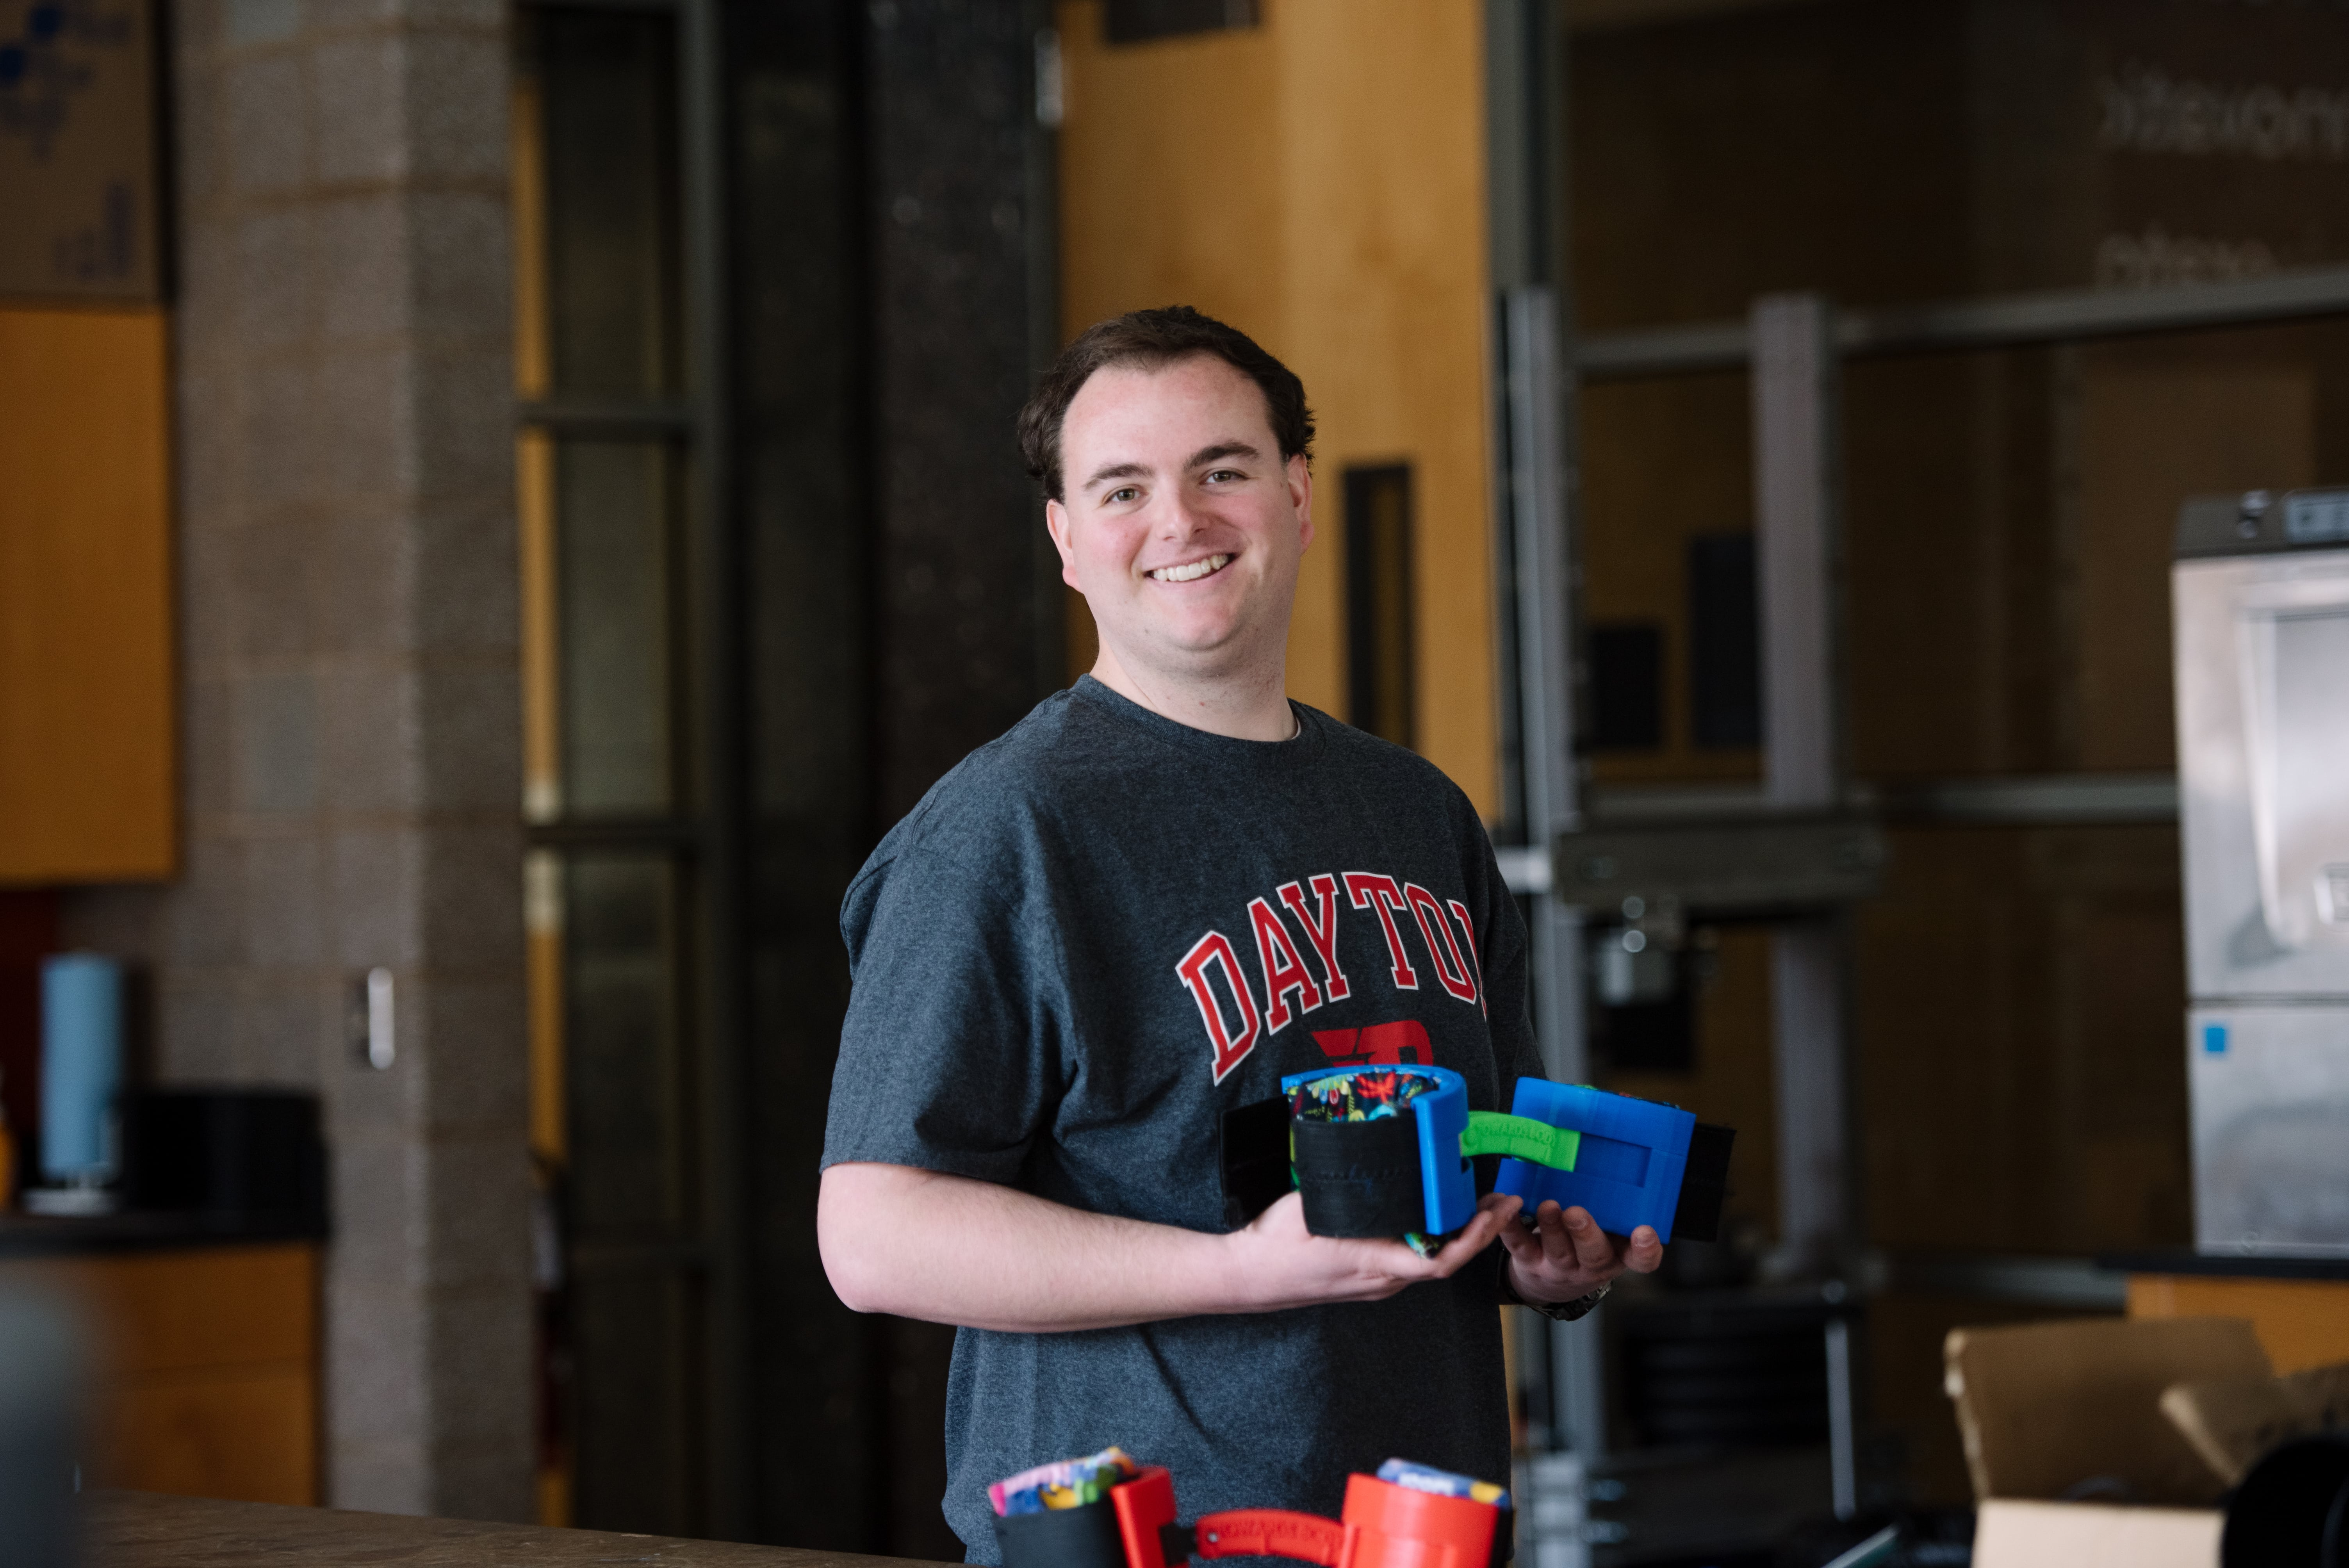 Young Entrepreneur Invents New Brace to Improve Limb Mobility and Comfort